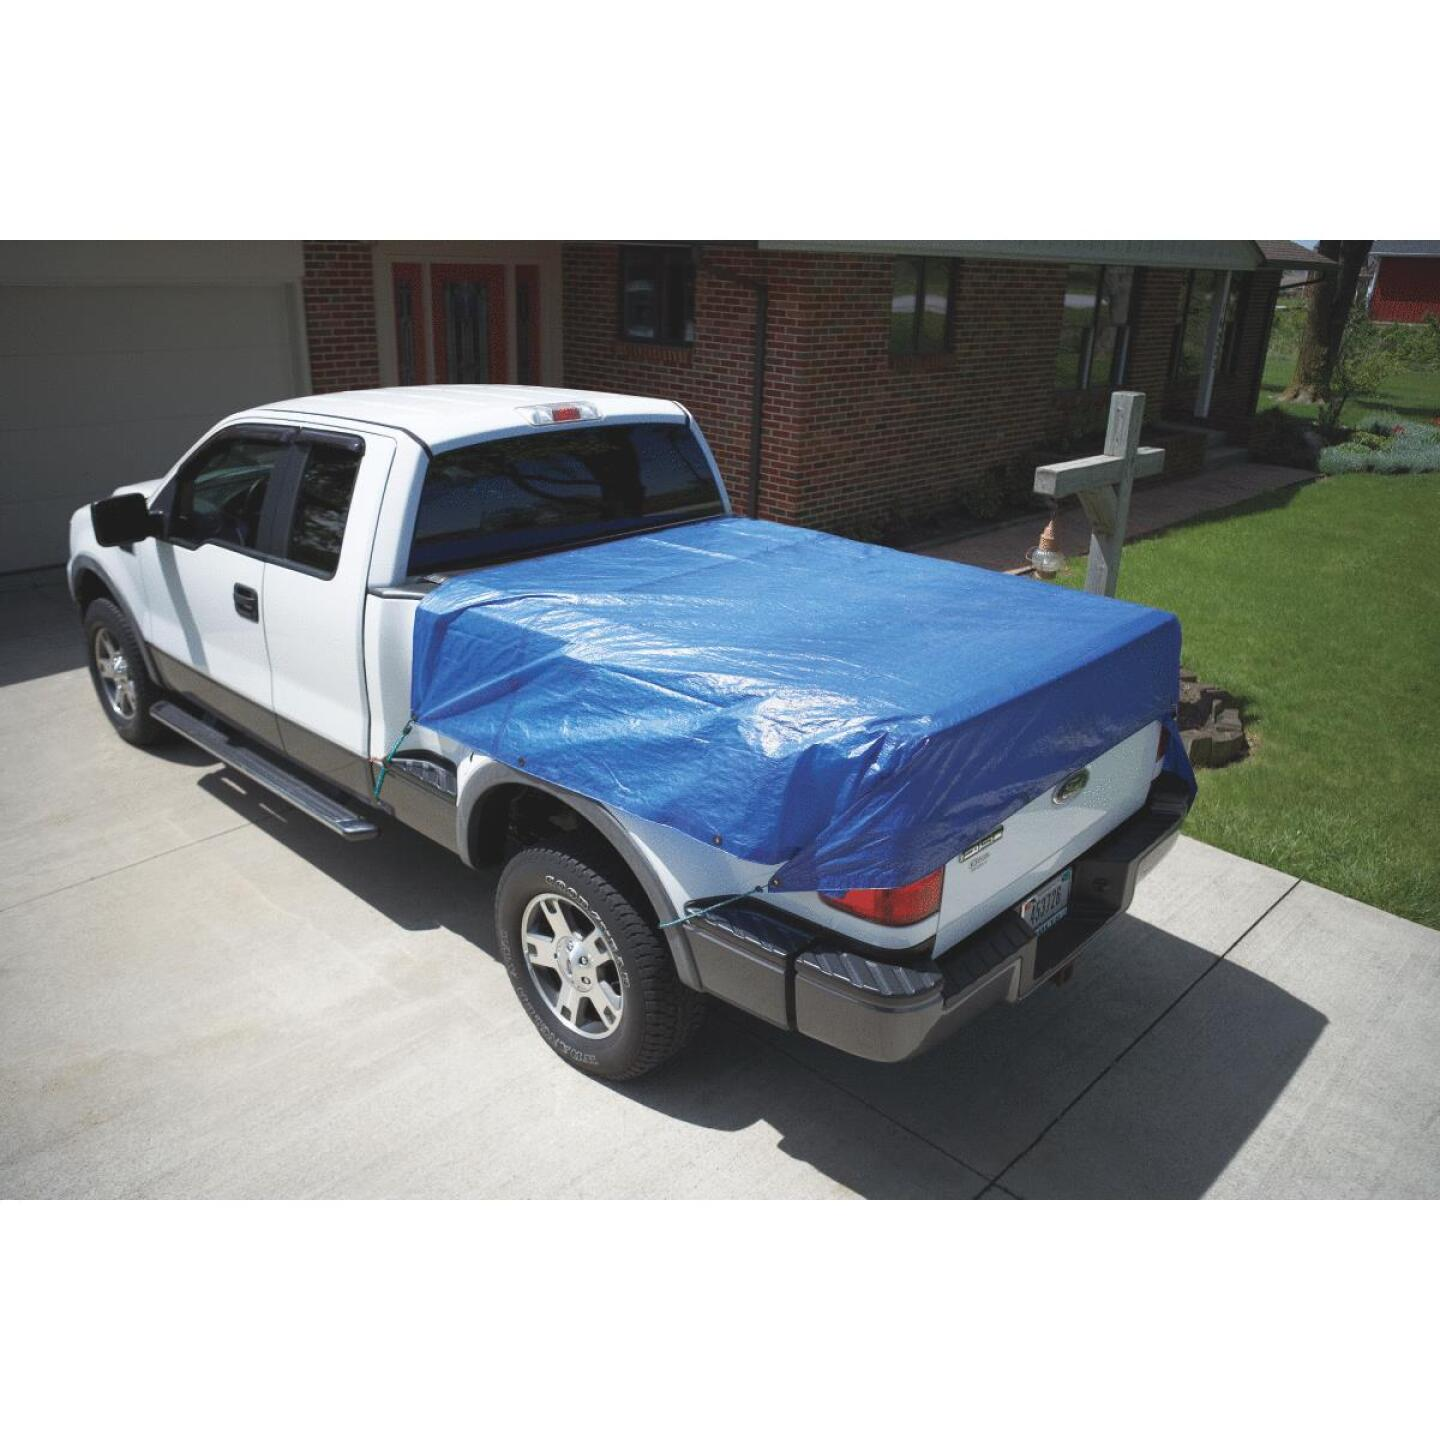 Do it Blue Woven 8 Ft. x 10 Ft. Medium Duty Poly Tarp Image 4